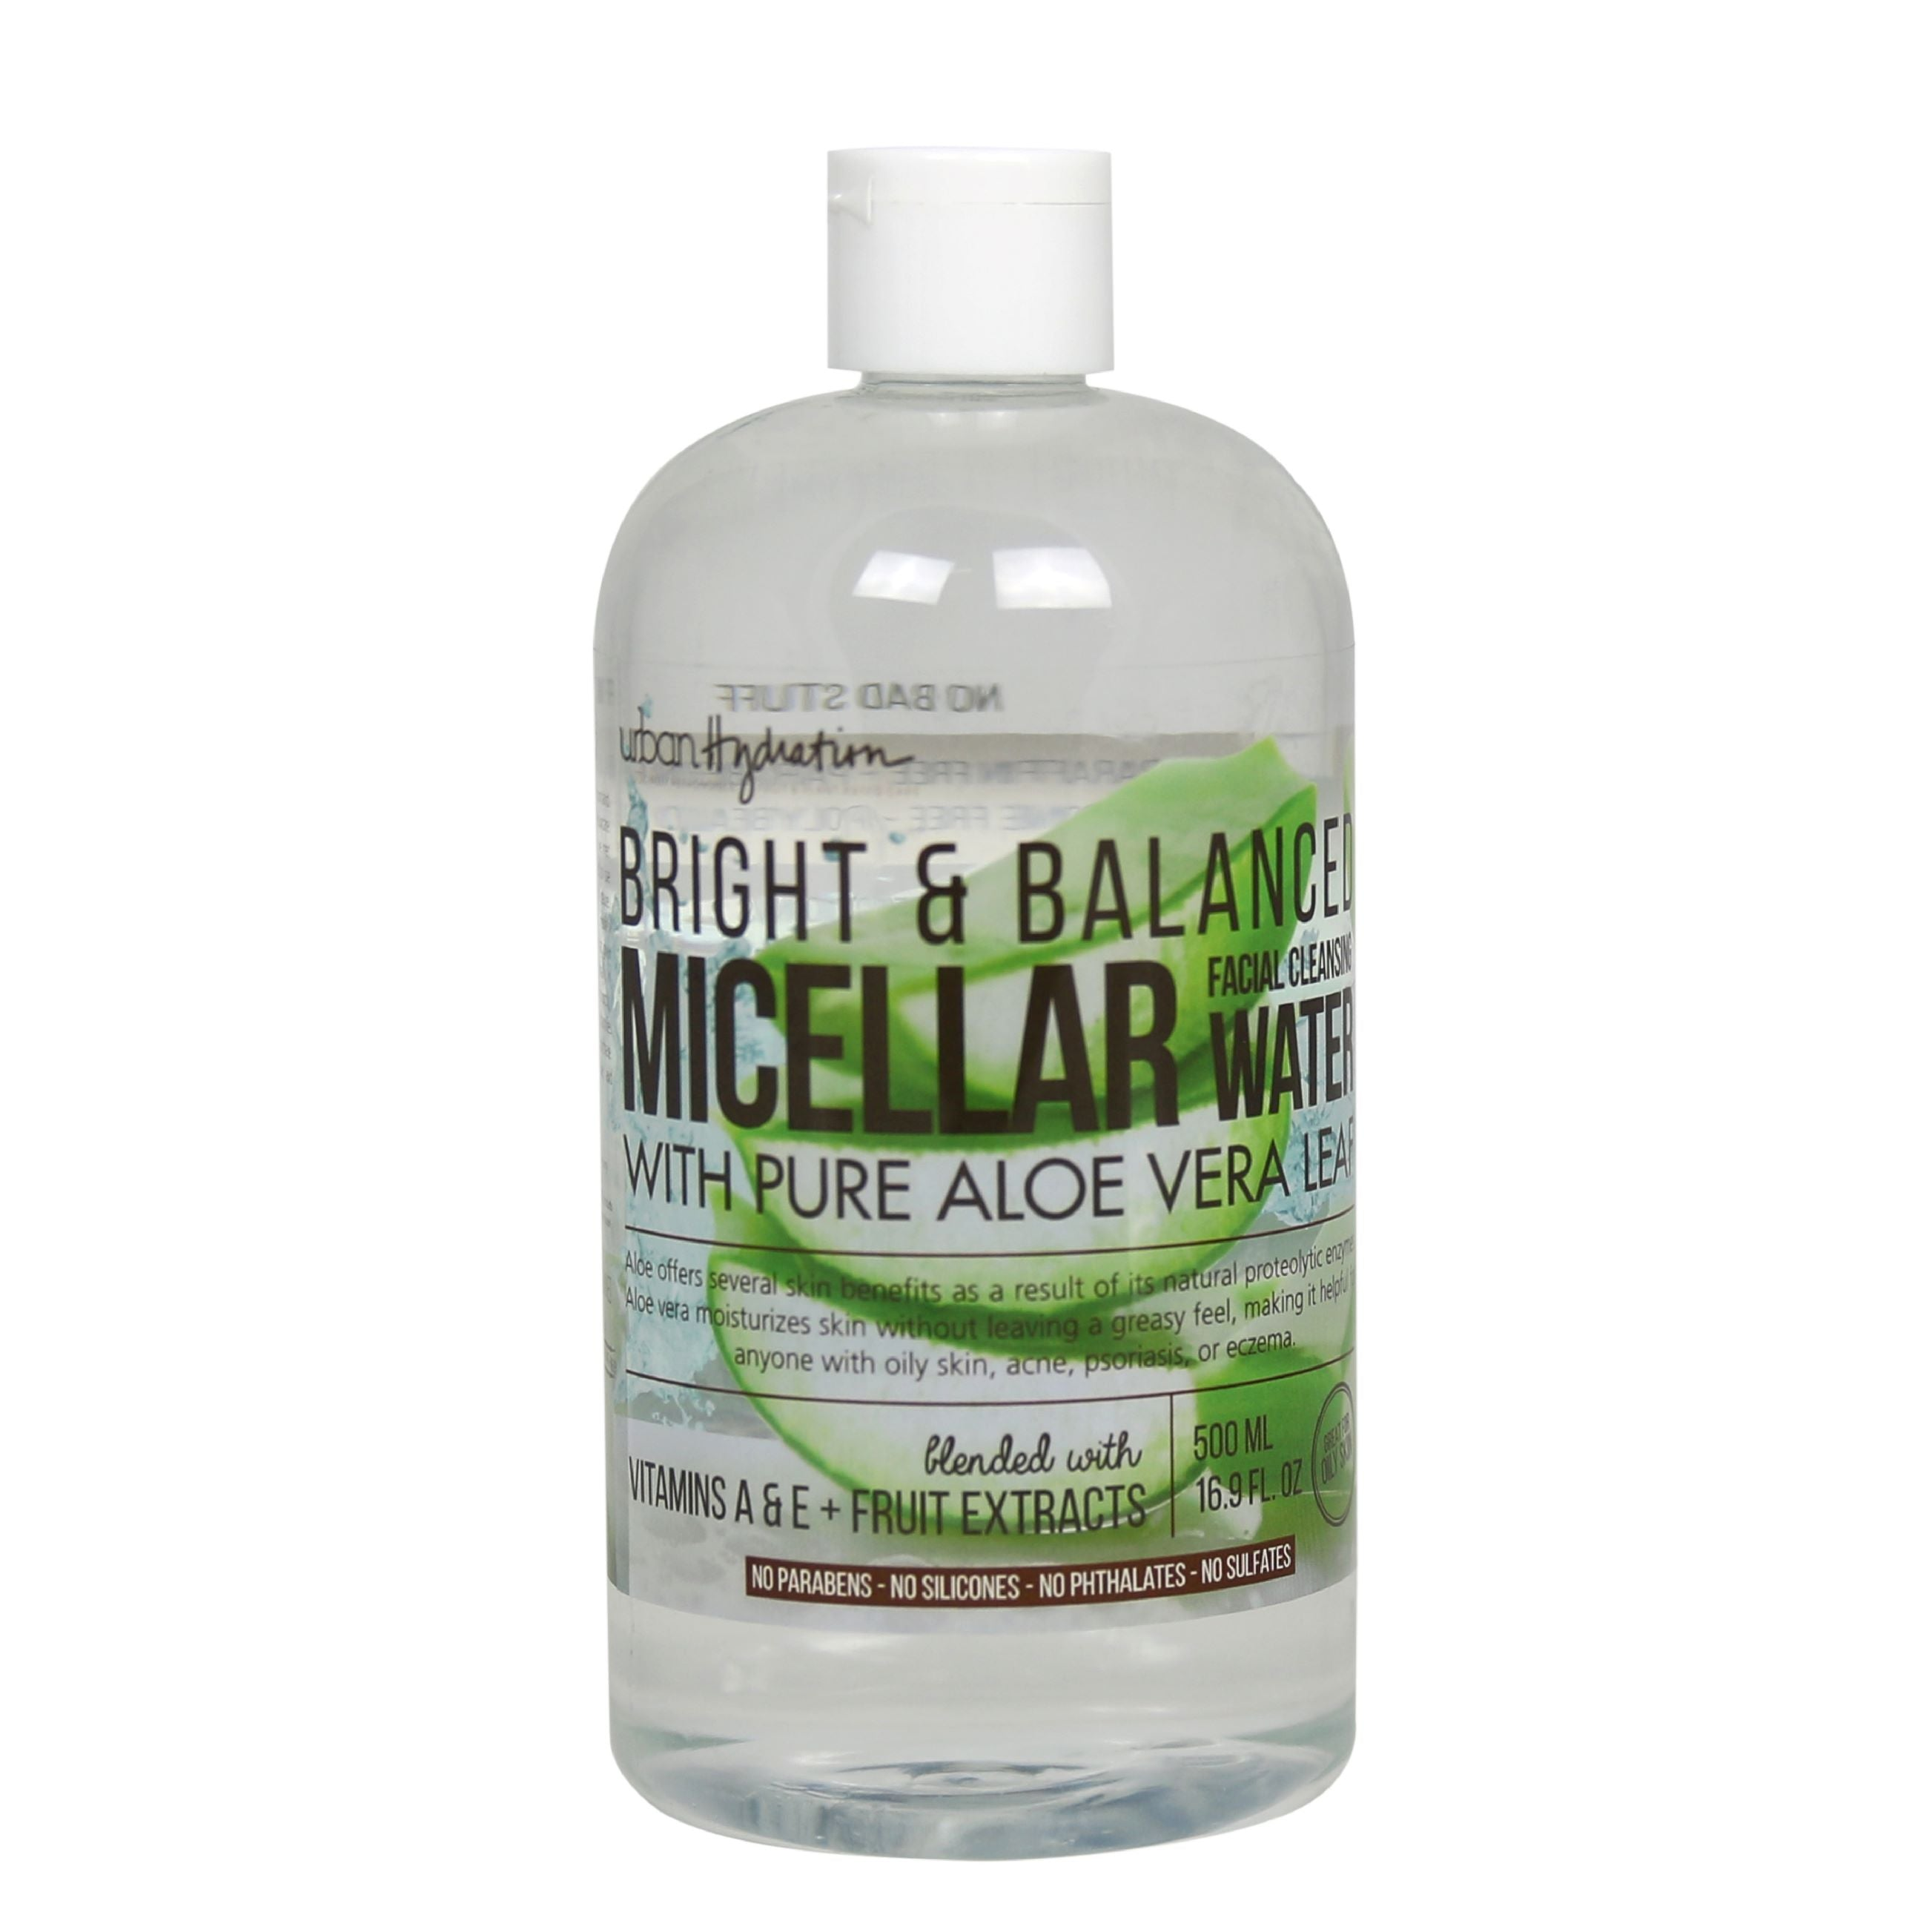 Bright & Balanced Aloe Vera Skincare Set